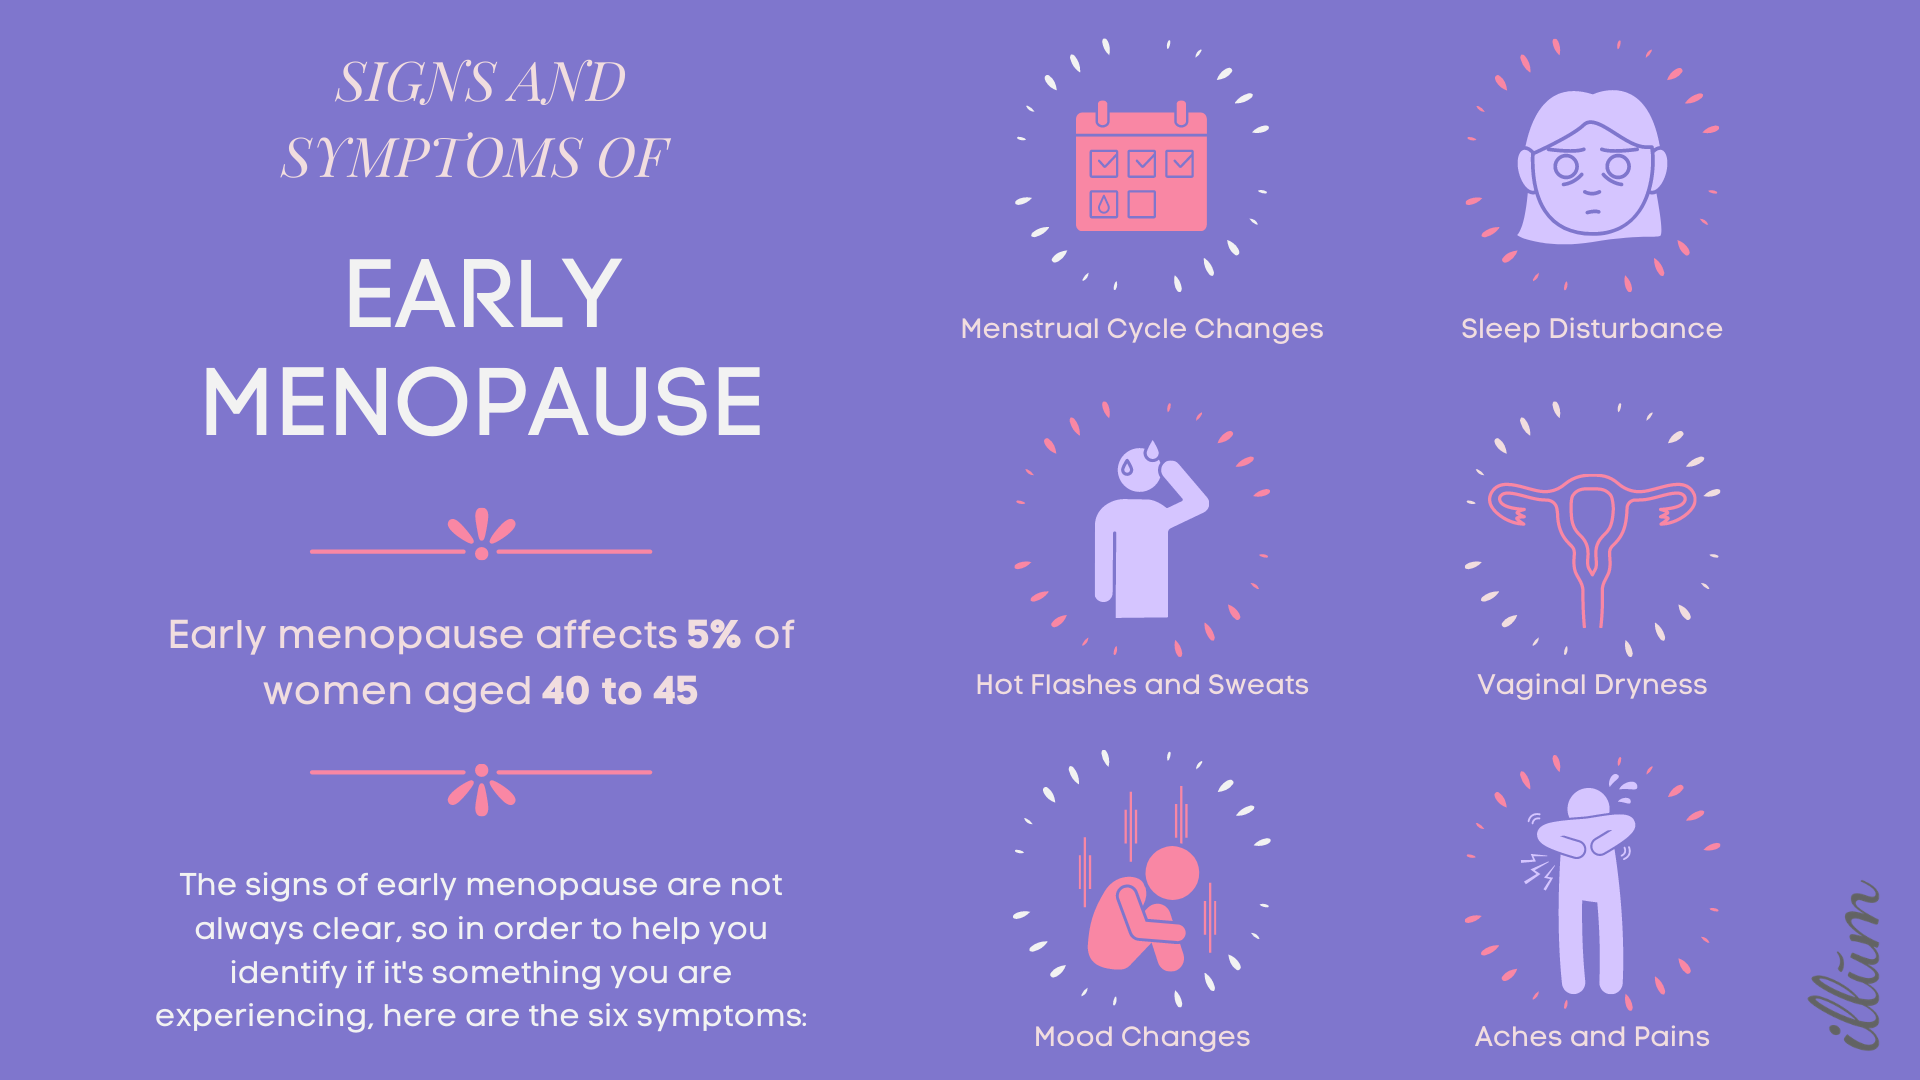 Signs and Symptoms of Early Menopause